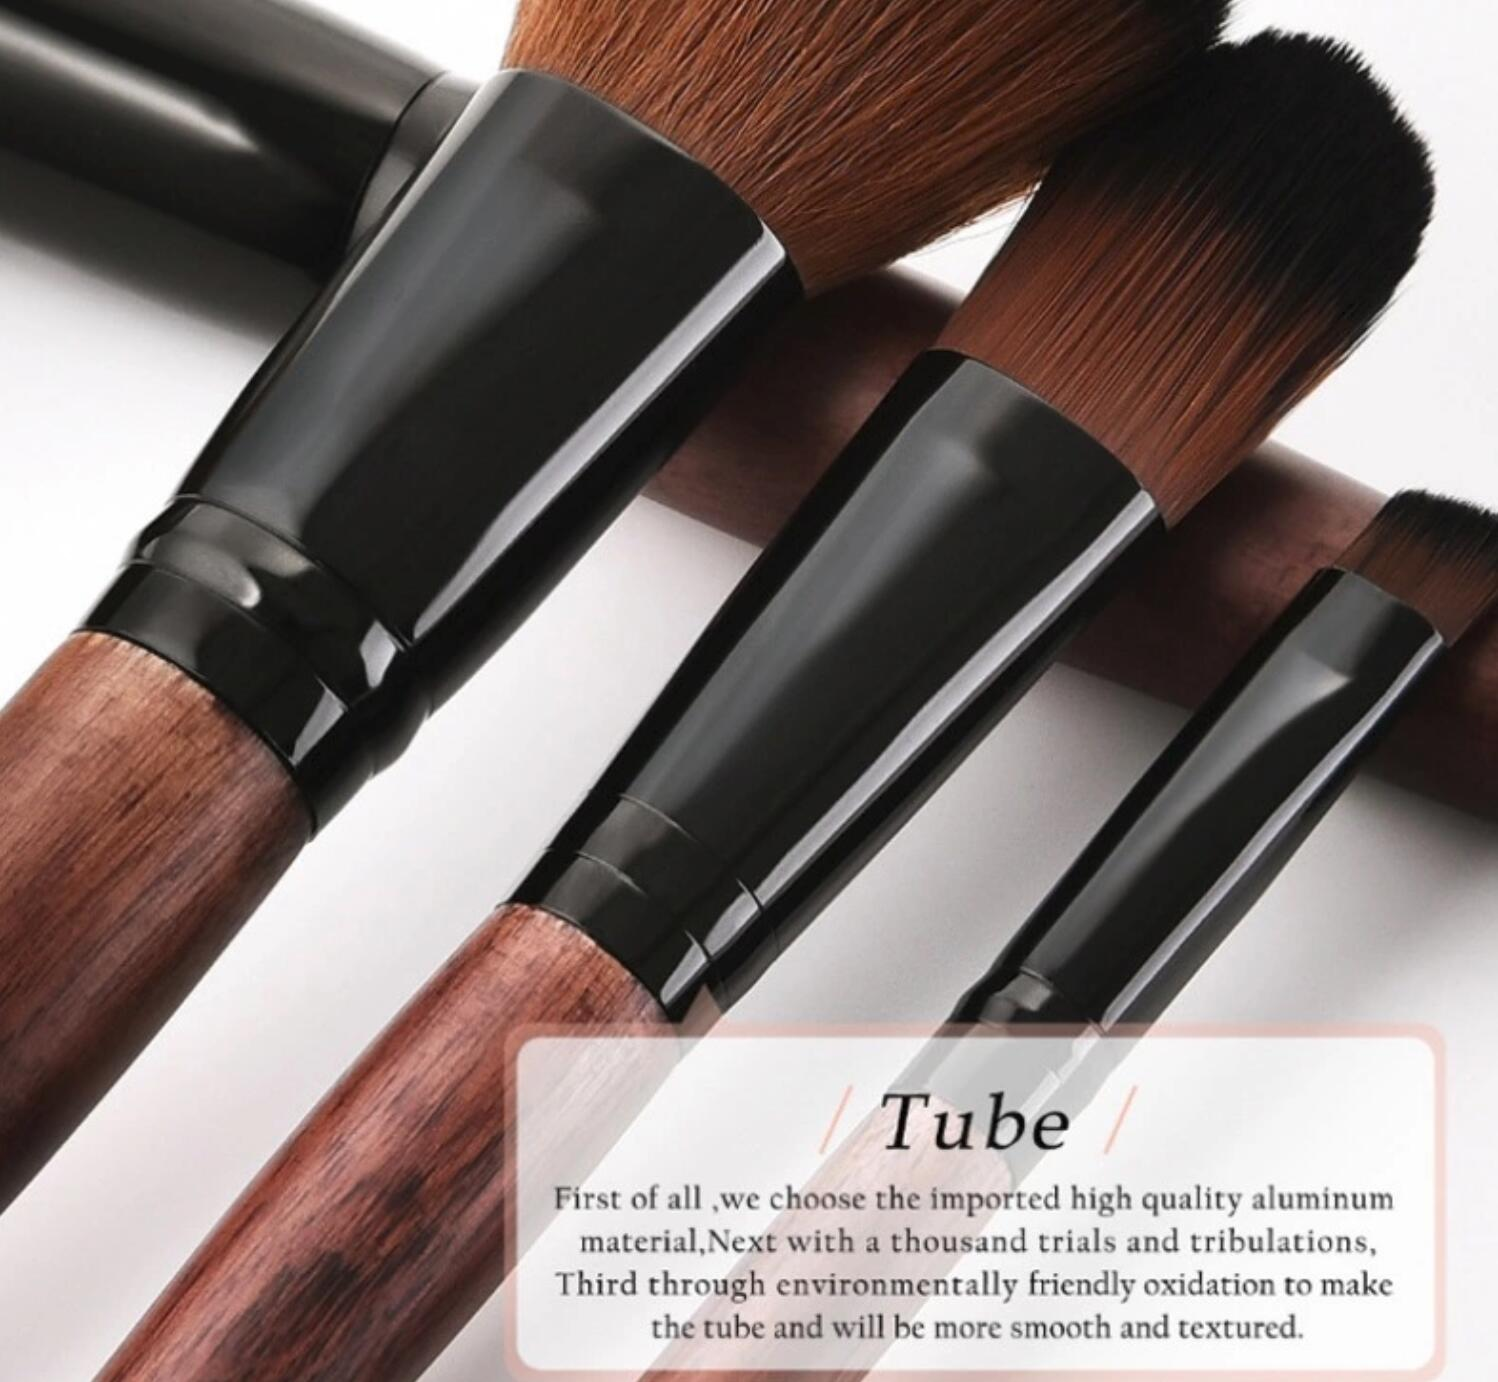 Sloping End Handle High Quality Makeup Brush Set 8pcs With Smoky Wood Color In Pouch